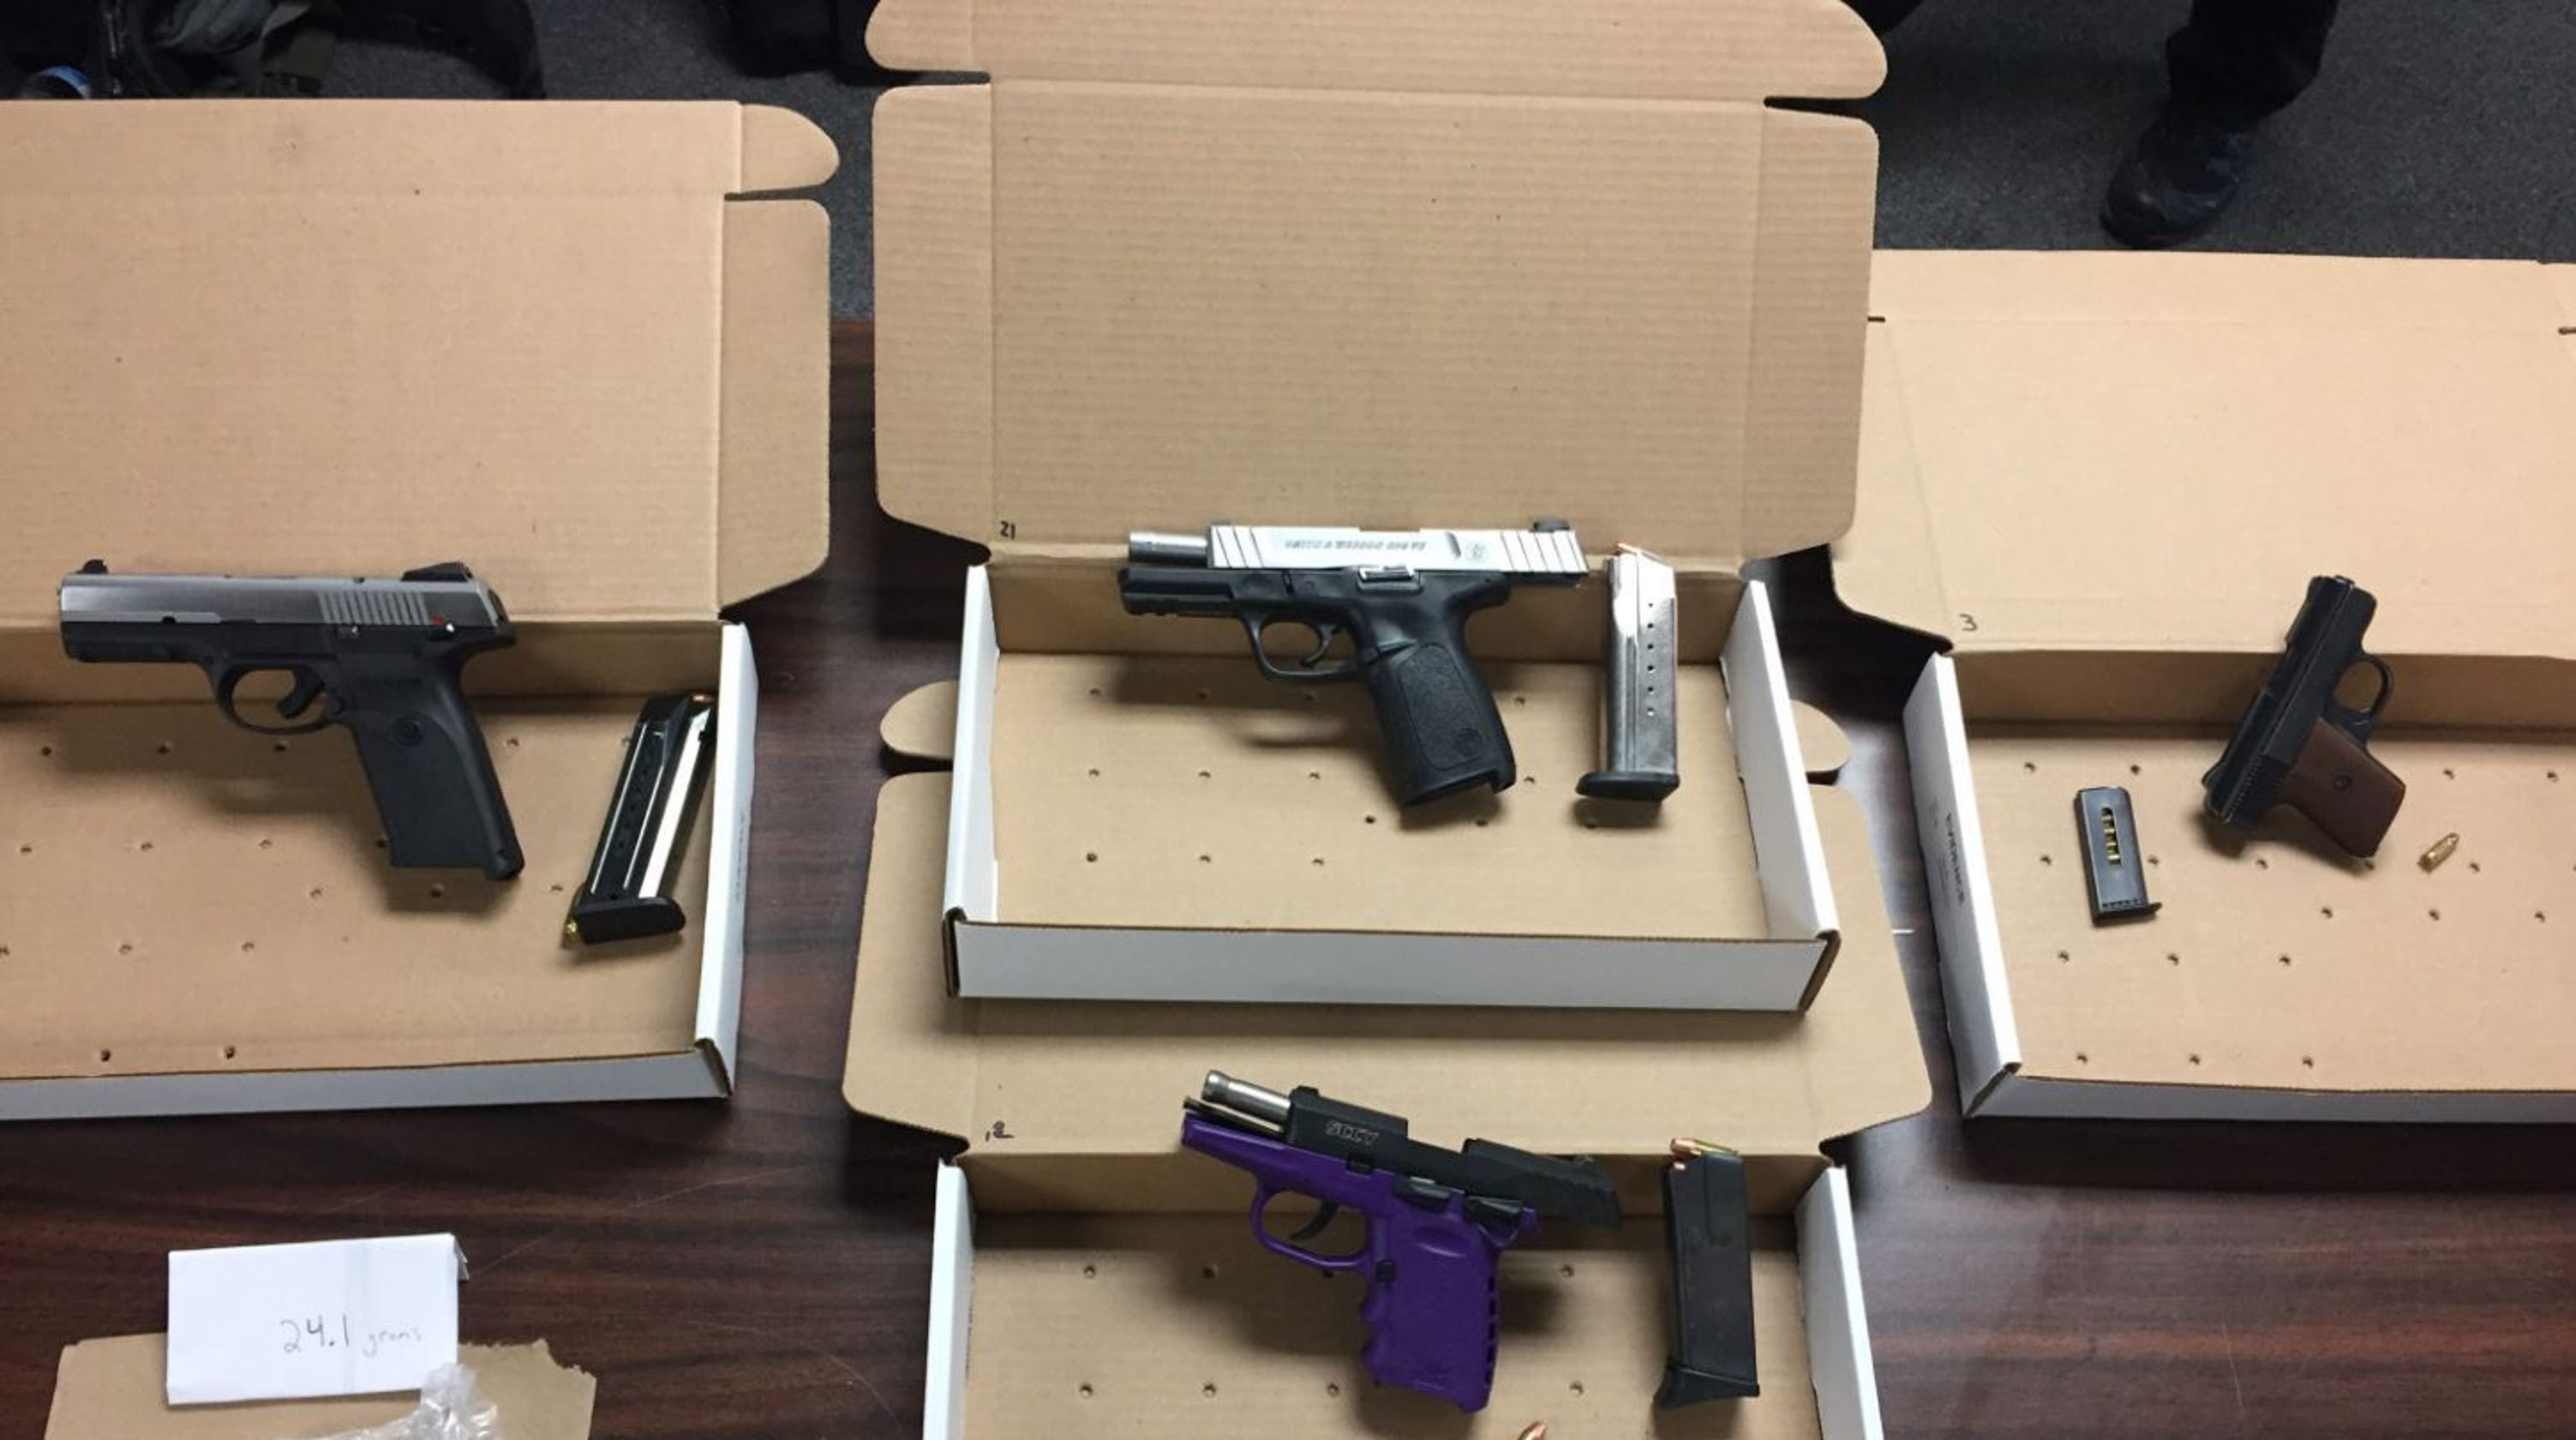 Six charged with gun, drug crimes after Dover investigation